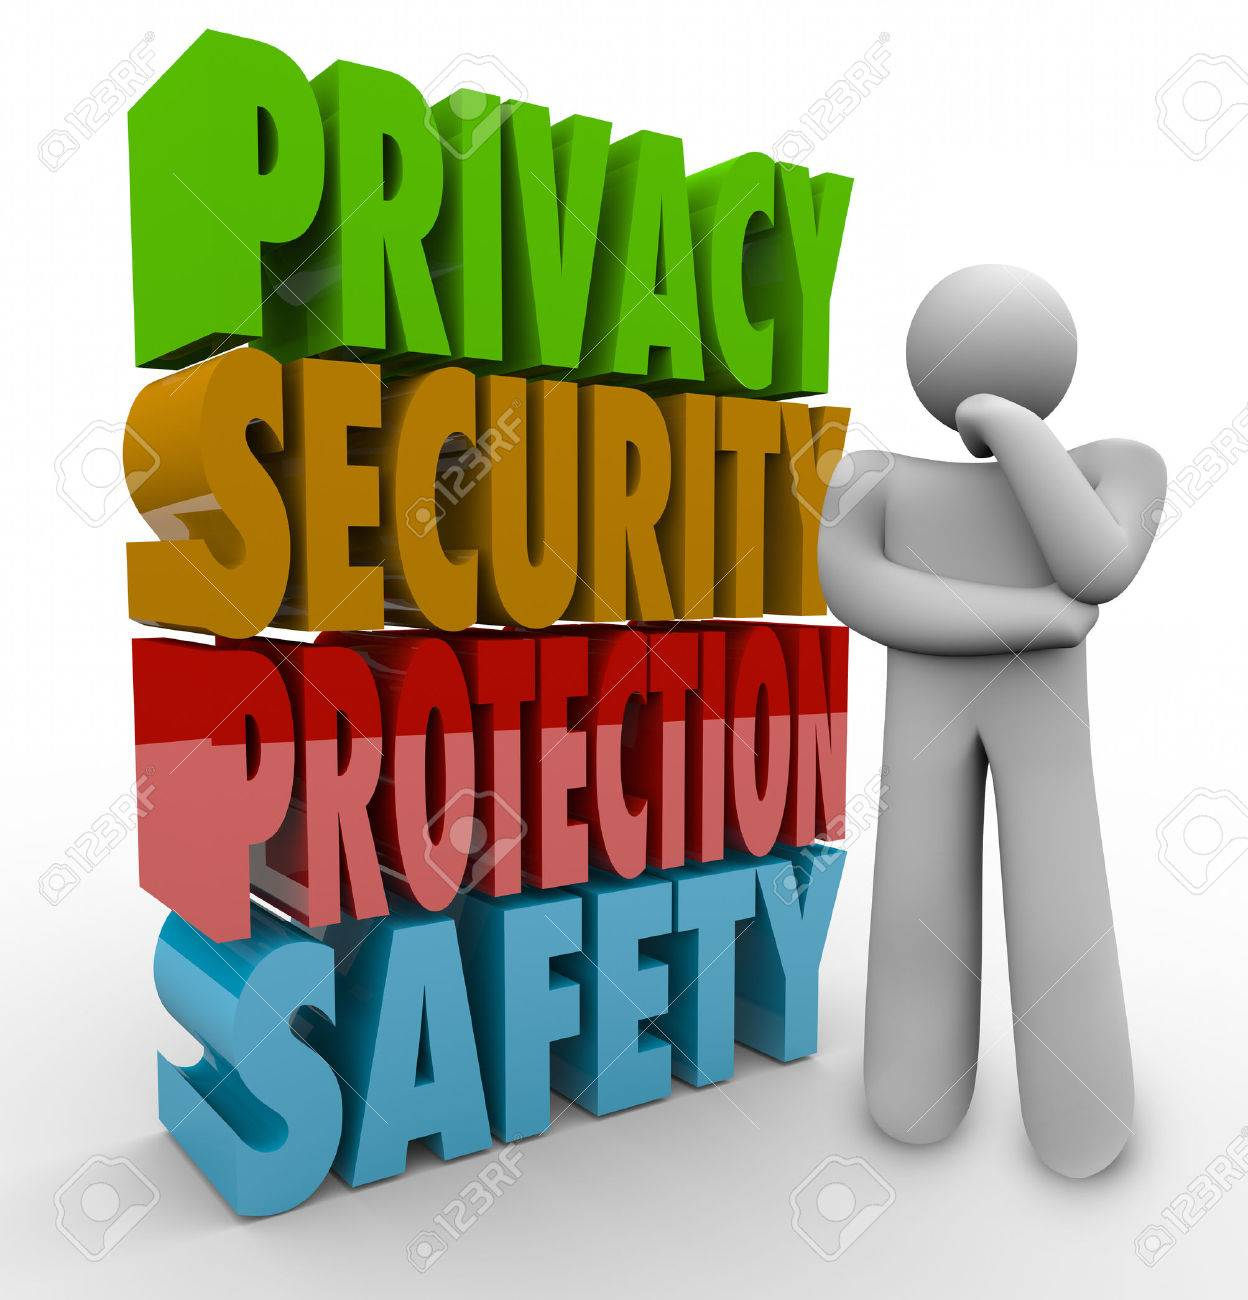 privacy, security, protection and safety 3d words beside a person Privacy Fence Ideas Safety privacy, security, protection and safety 3d words beside a person thinking about keeping personal